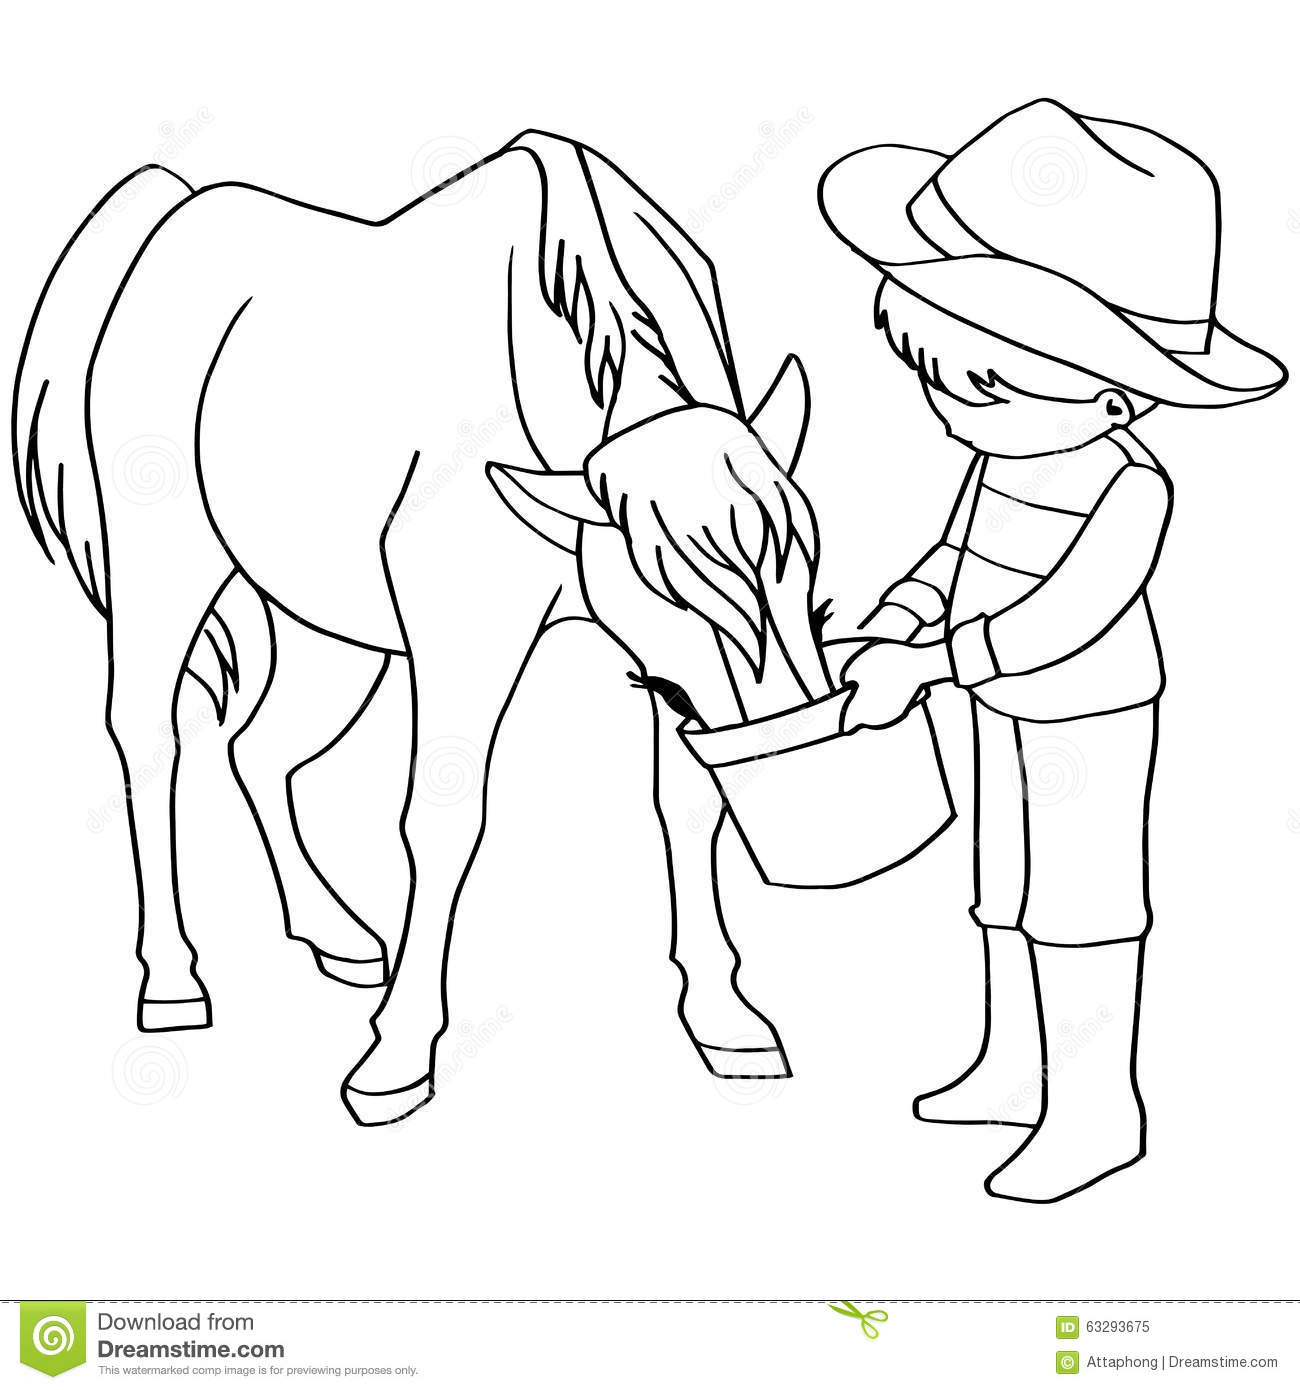 Kleurplaat Paard Tinker Coloring Book Child Feeding Horses Vector Stock Vector